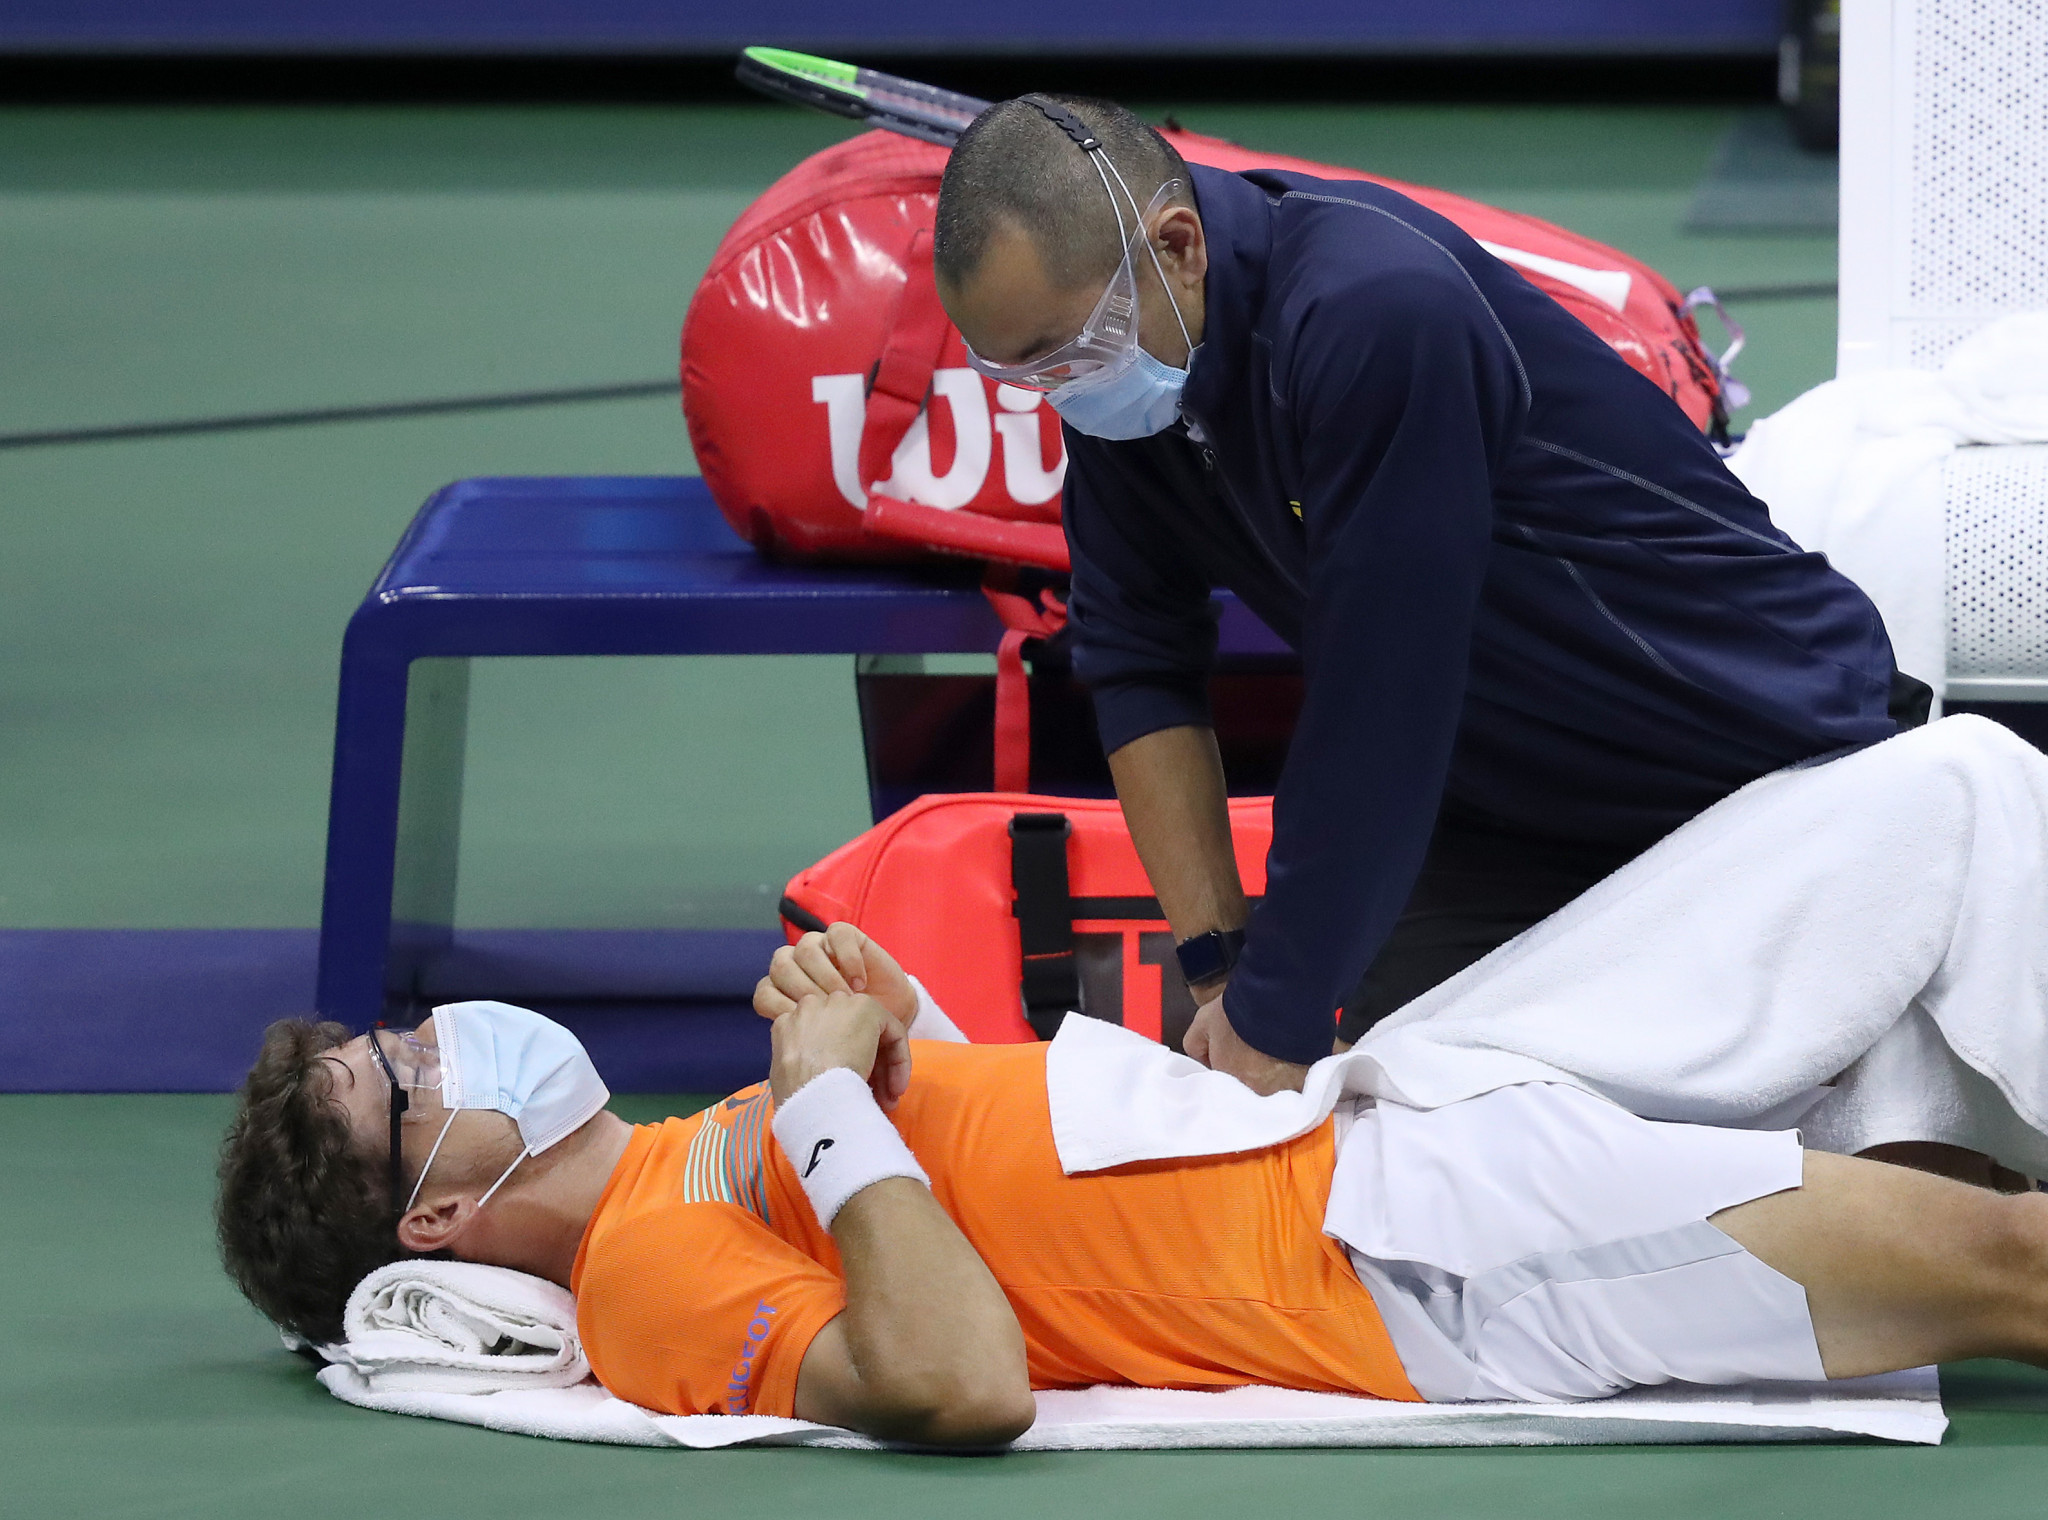 Pablo Carreno-Busta received treatment from the trainer as he lost his semi-final to Alex Zverev ©Getty Images